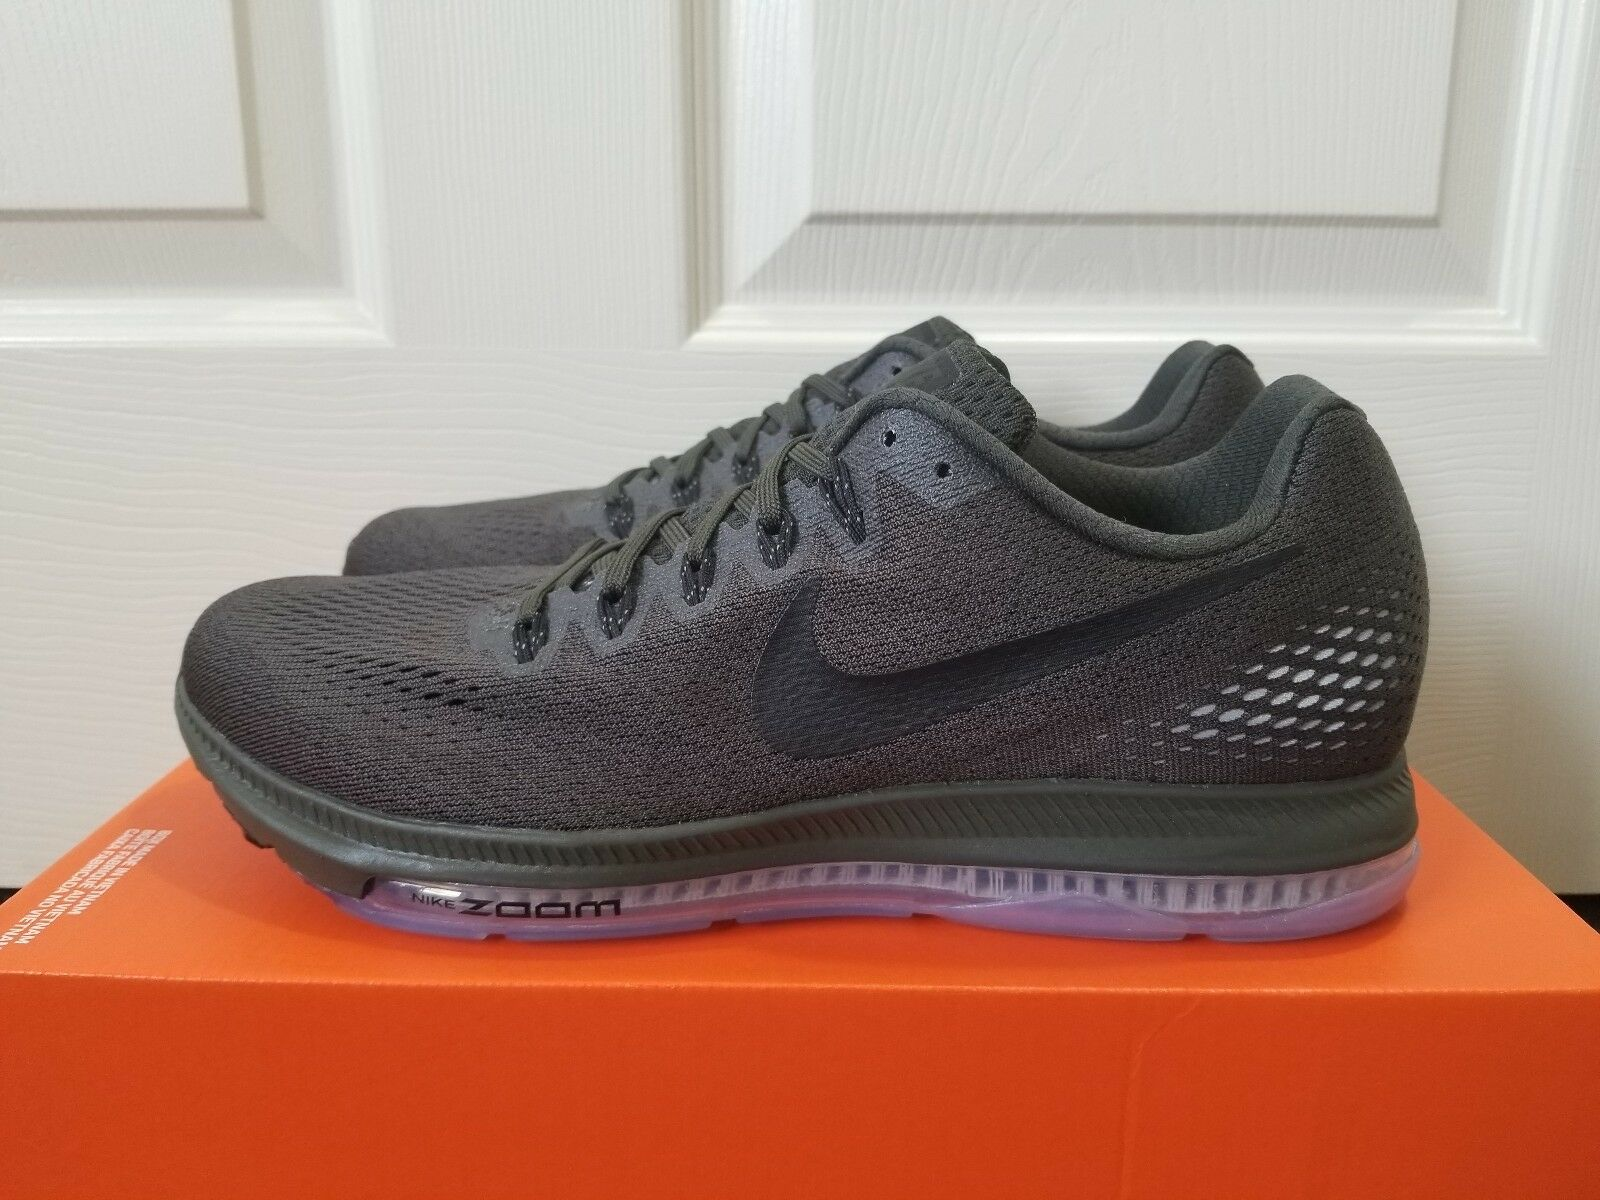 hot sale online 6a6fb 21695 Nike Zoom All Out Out Out Low Green Black Men s Running shoes Sz 9 (878670